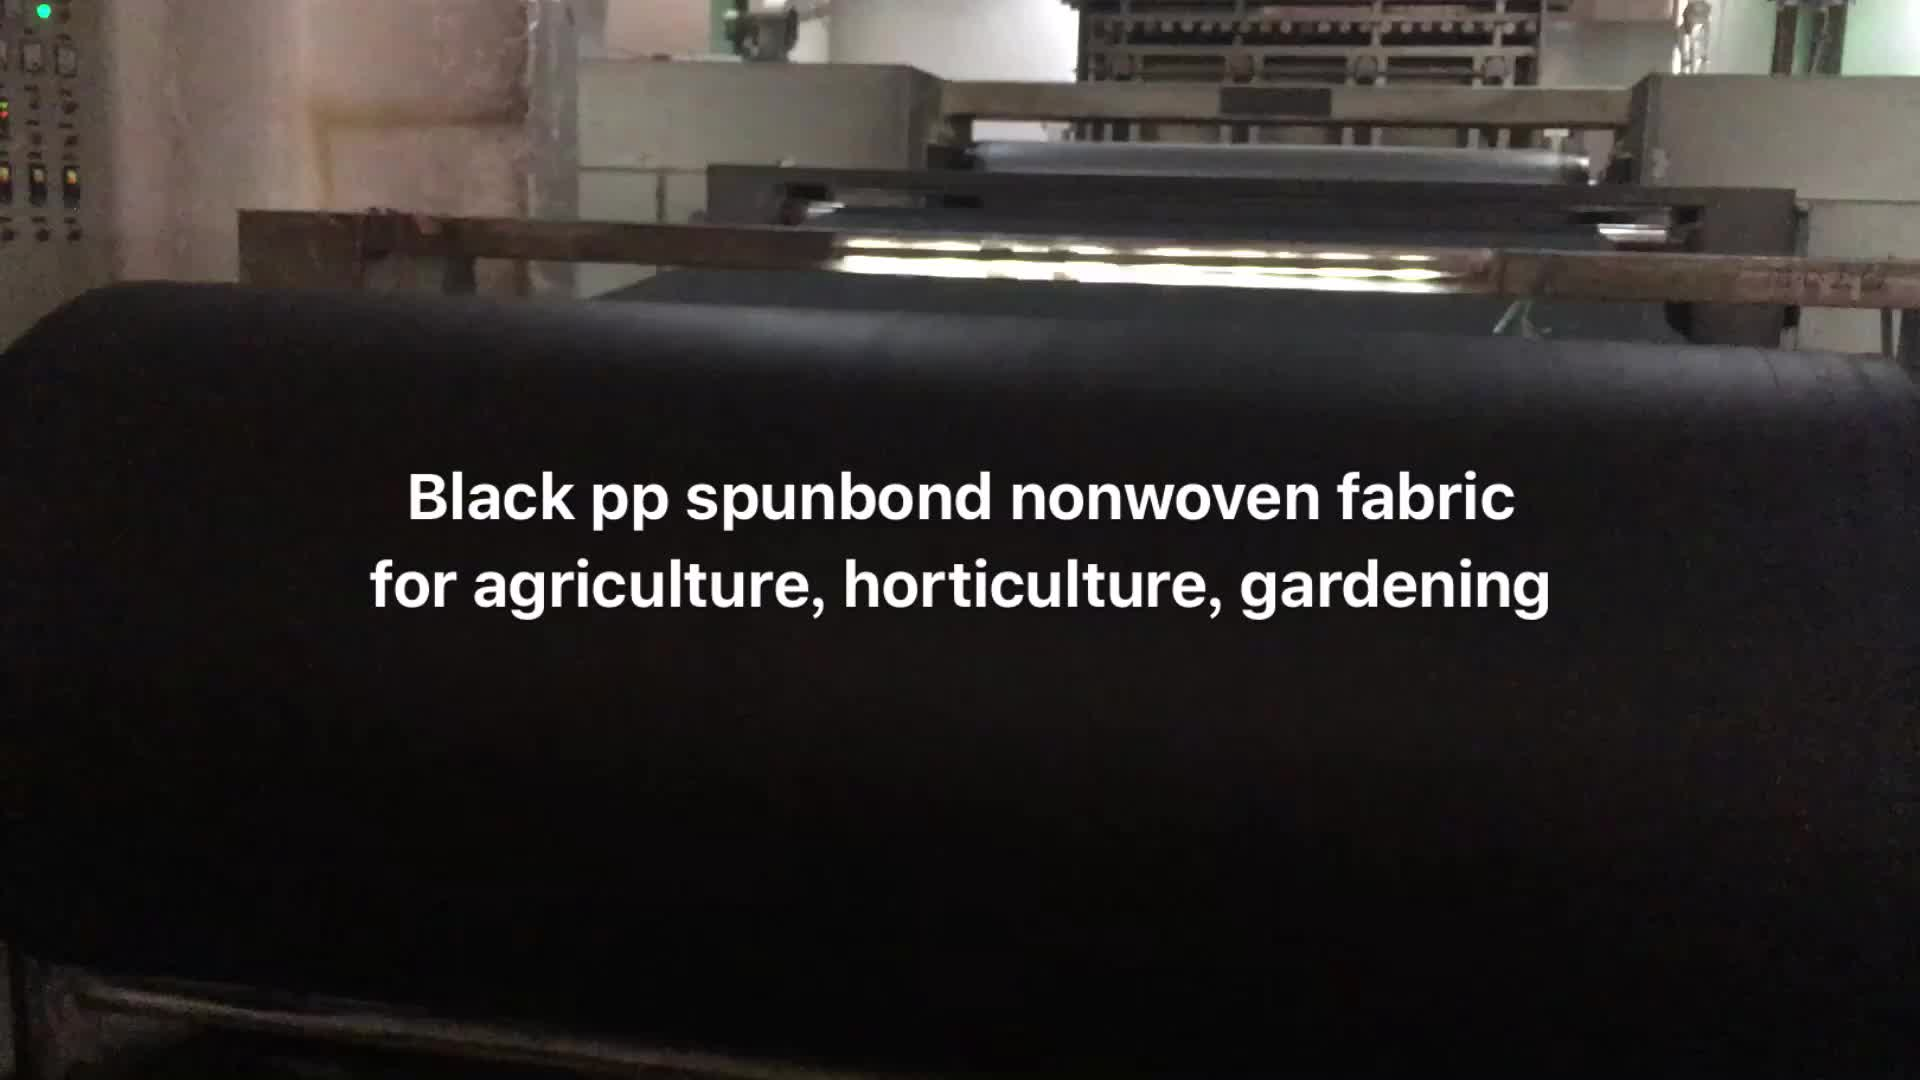 [FACTORY]Large width UV treat pp spunbond non-woven nonwoven winter fleece frost plant cover and landscape non woven fabric roll